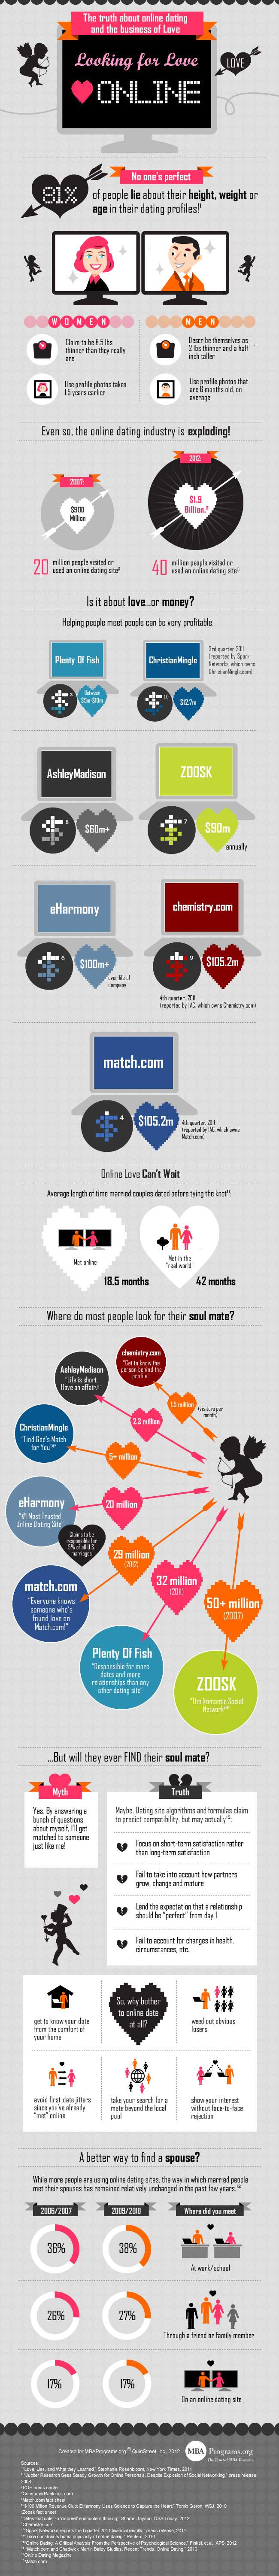 Looking-For-Love-Online-Infographic